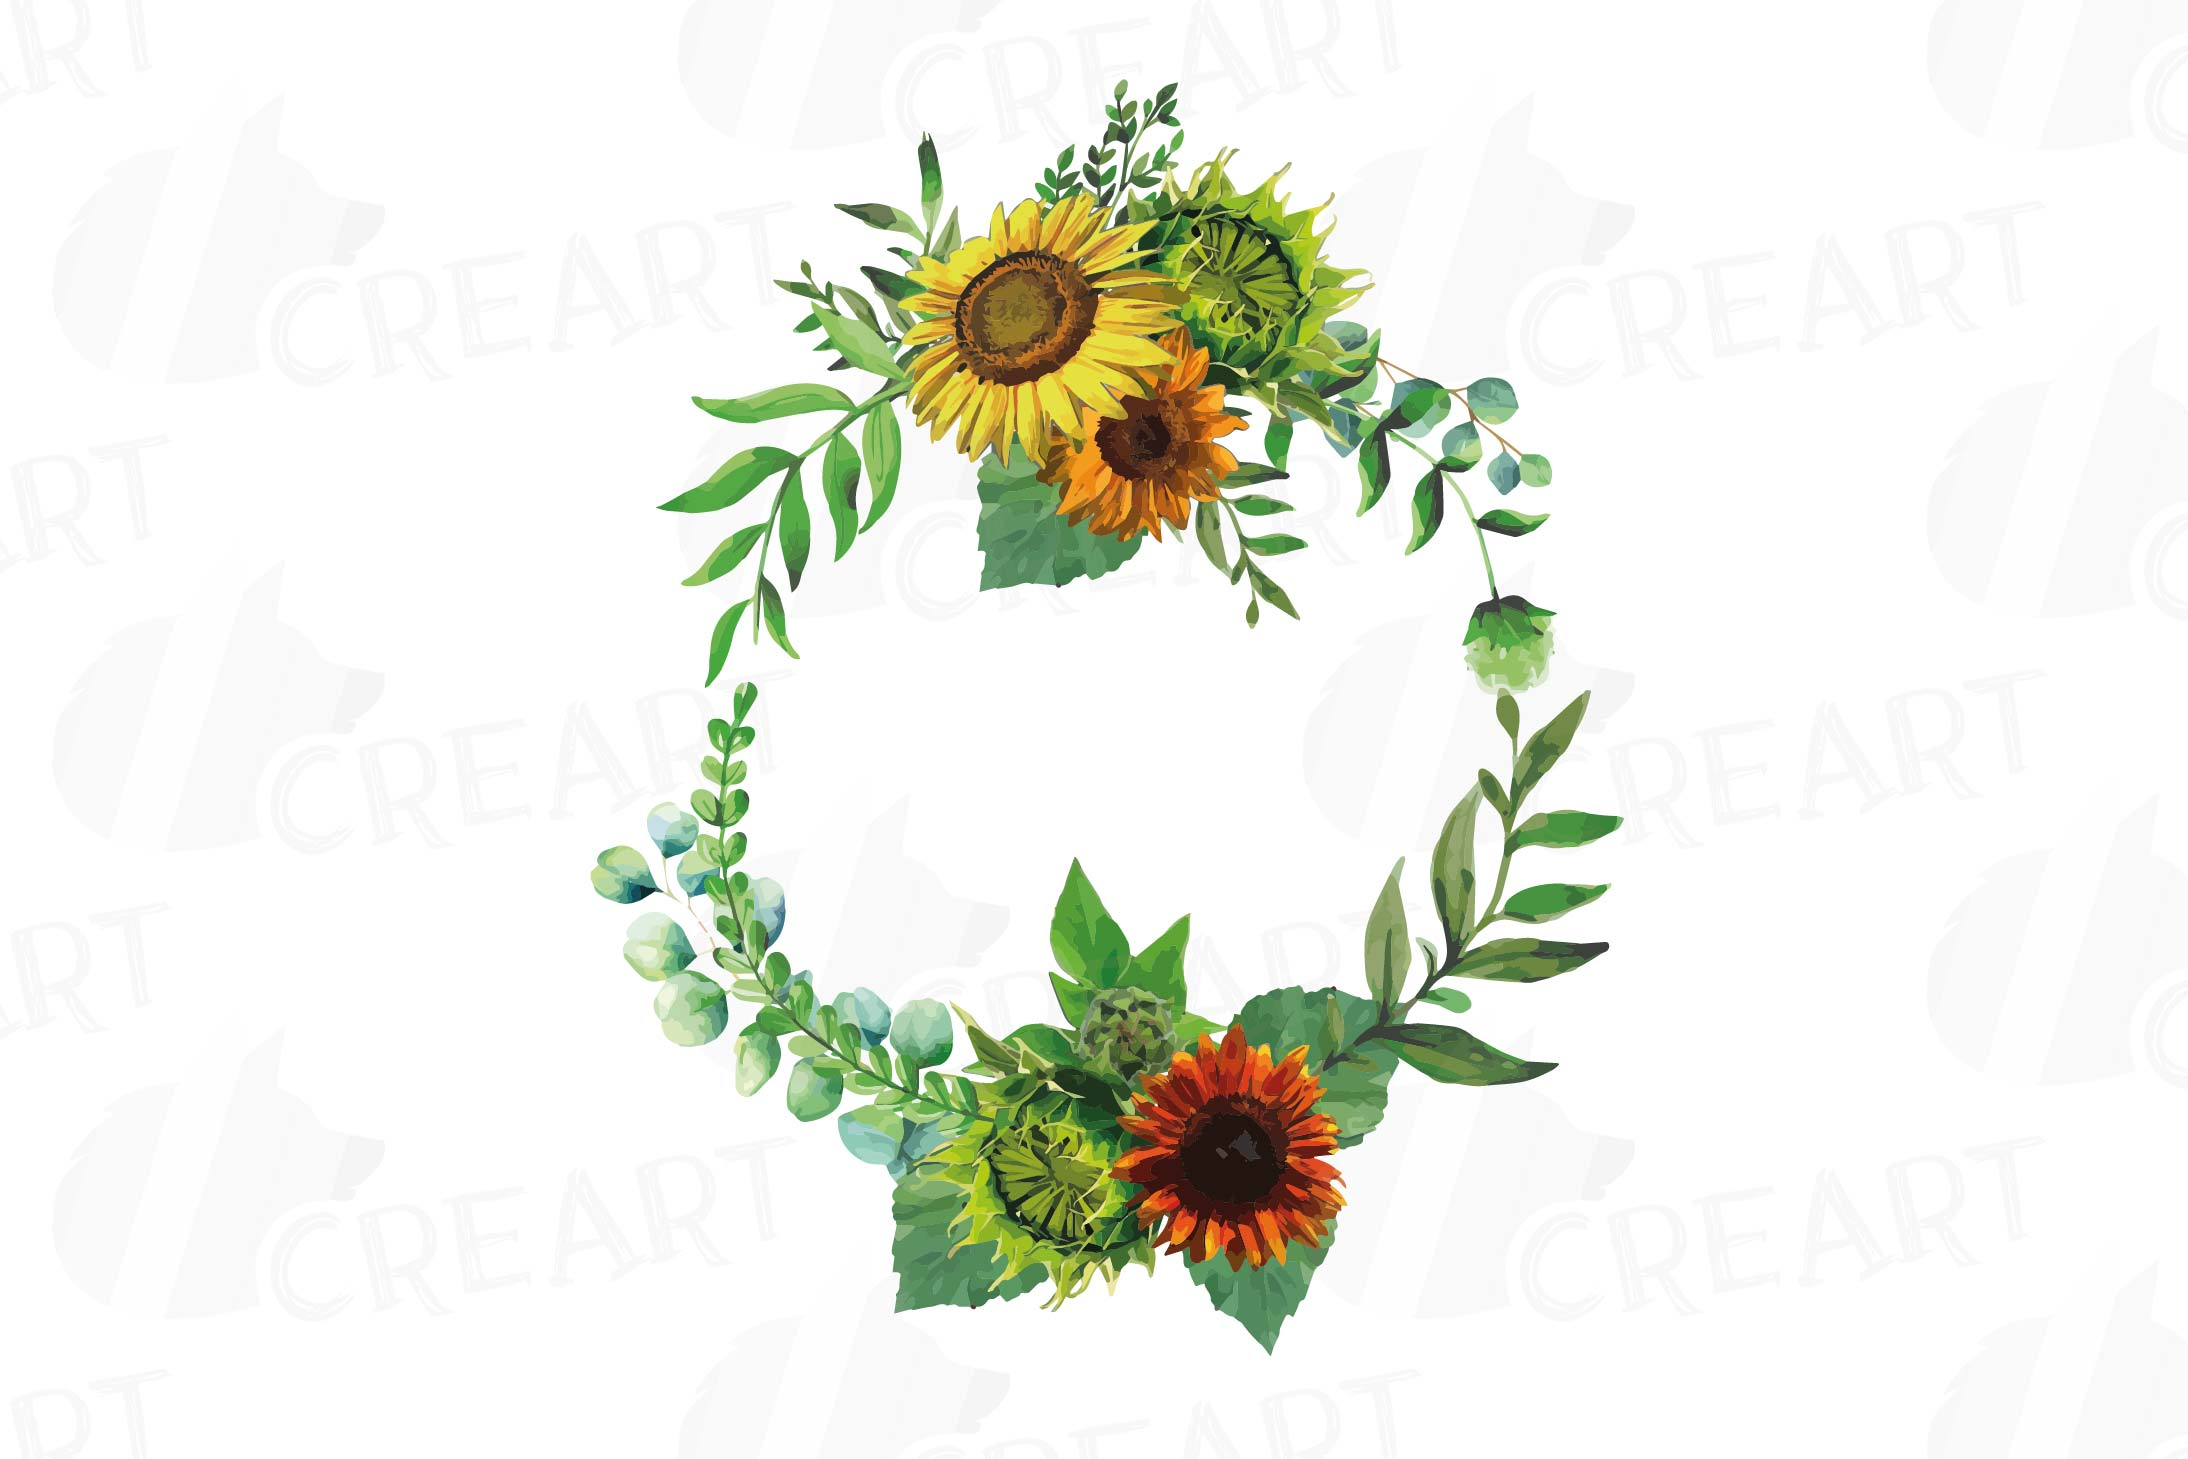 Watercolor sunflower bouquets and design elements example image 12